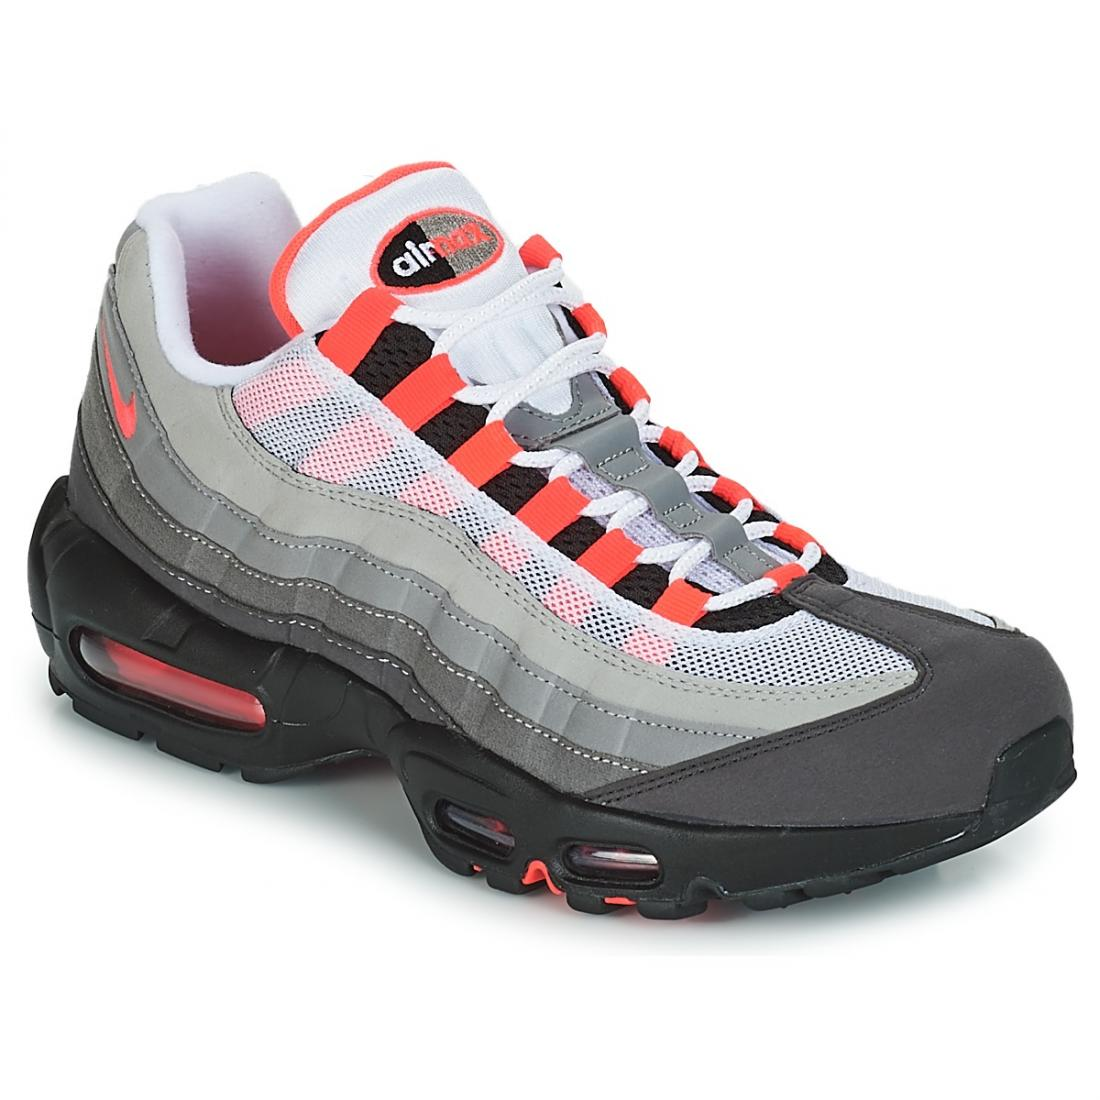 air max 95 homme blanche et rouge et noir homme baskets mode nike air max 95 og blanc rouge u003c adascooters www insoco fr